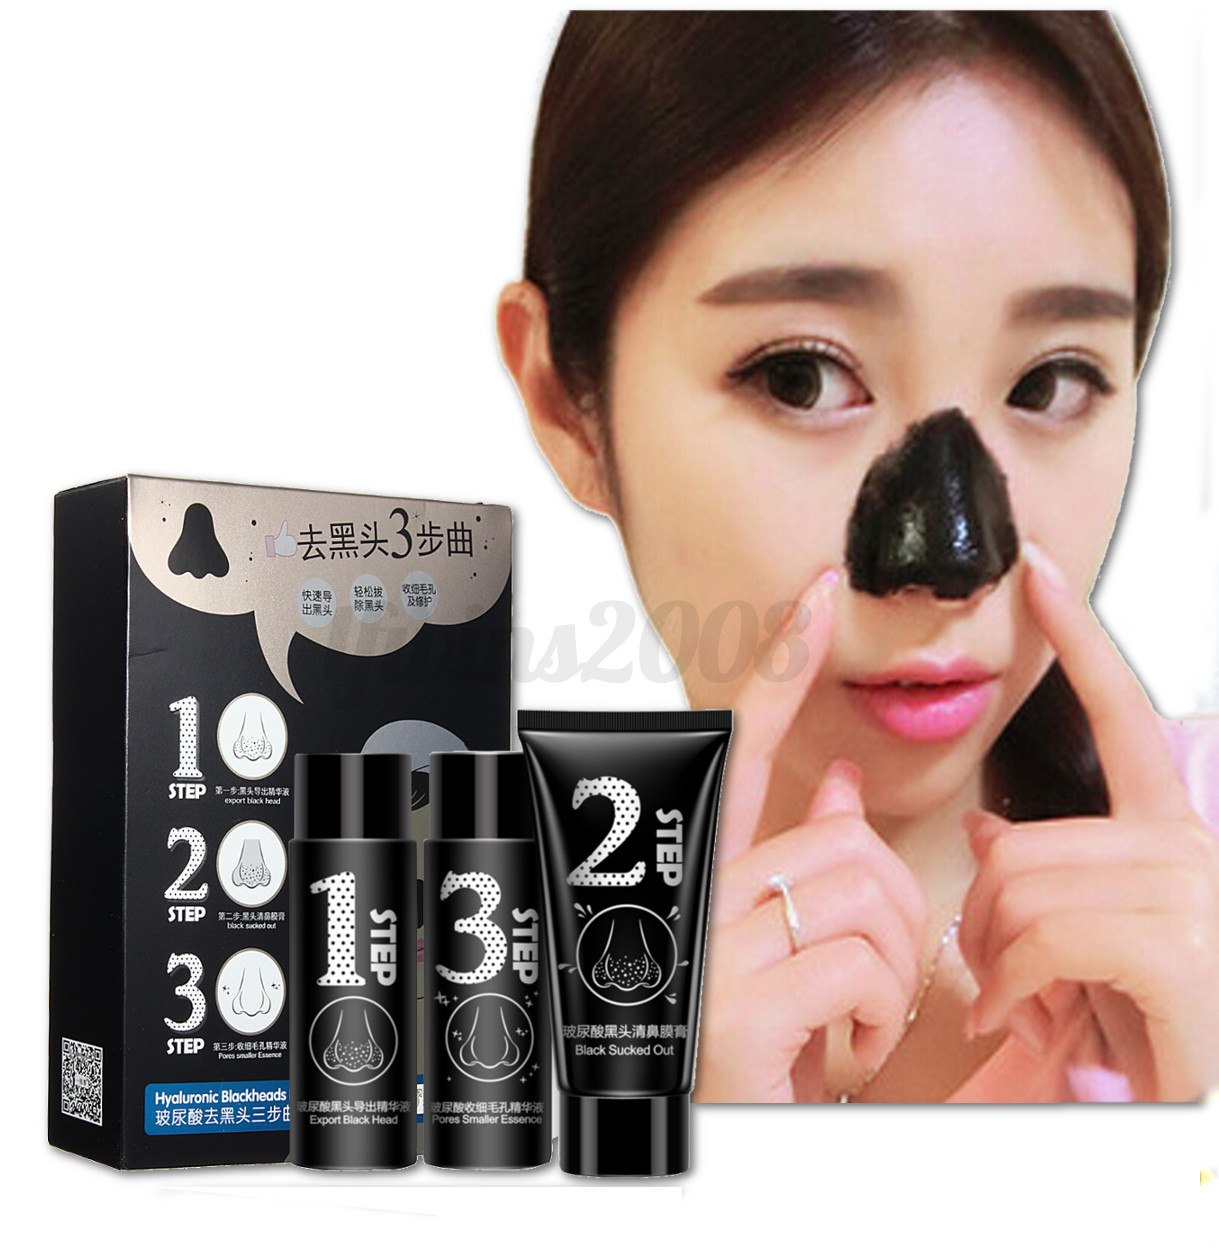 3 tape masques anti point noir acn peau nez visage soins black mask remover eur 5 45. Black Bedroom Furniture Sets. Home Design Ideas